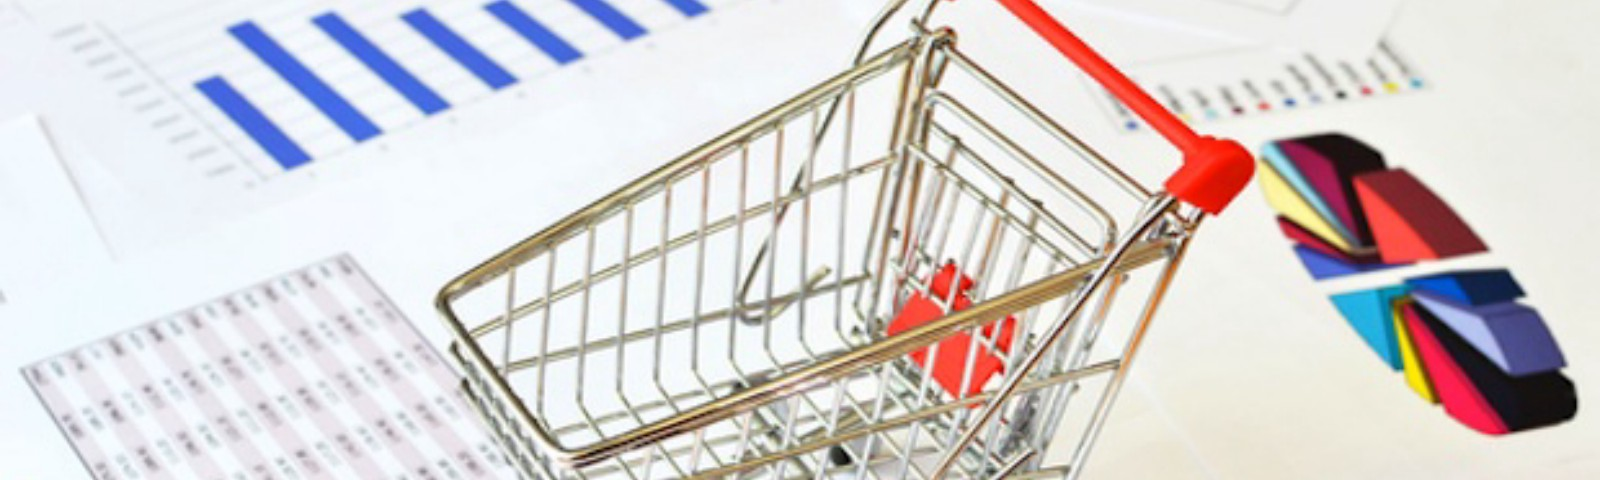 Market Basket Analysis on Online Retail Data - Towards Data Science